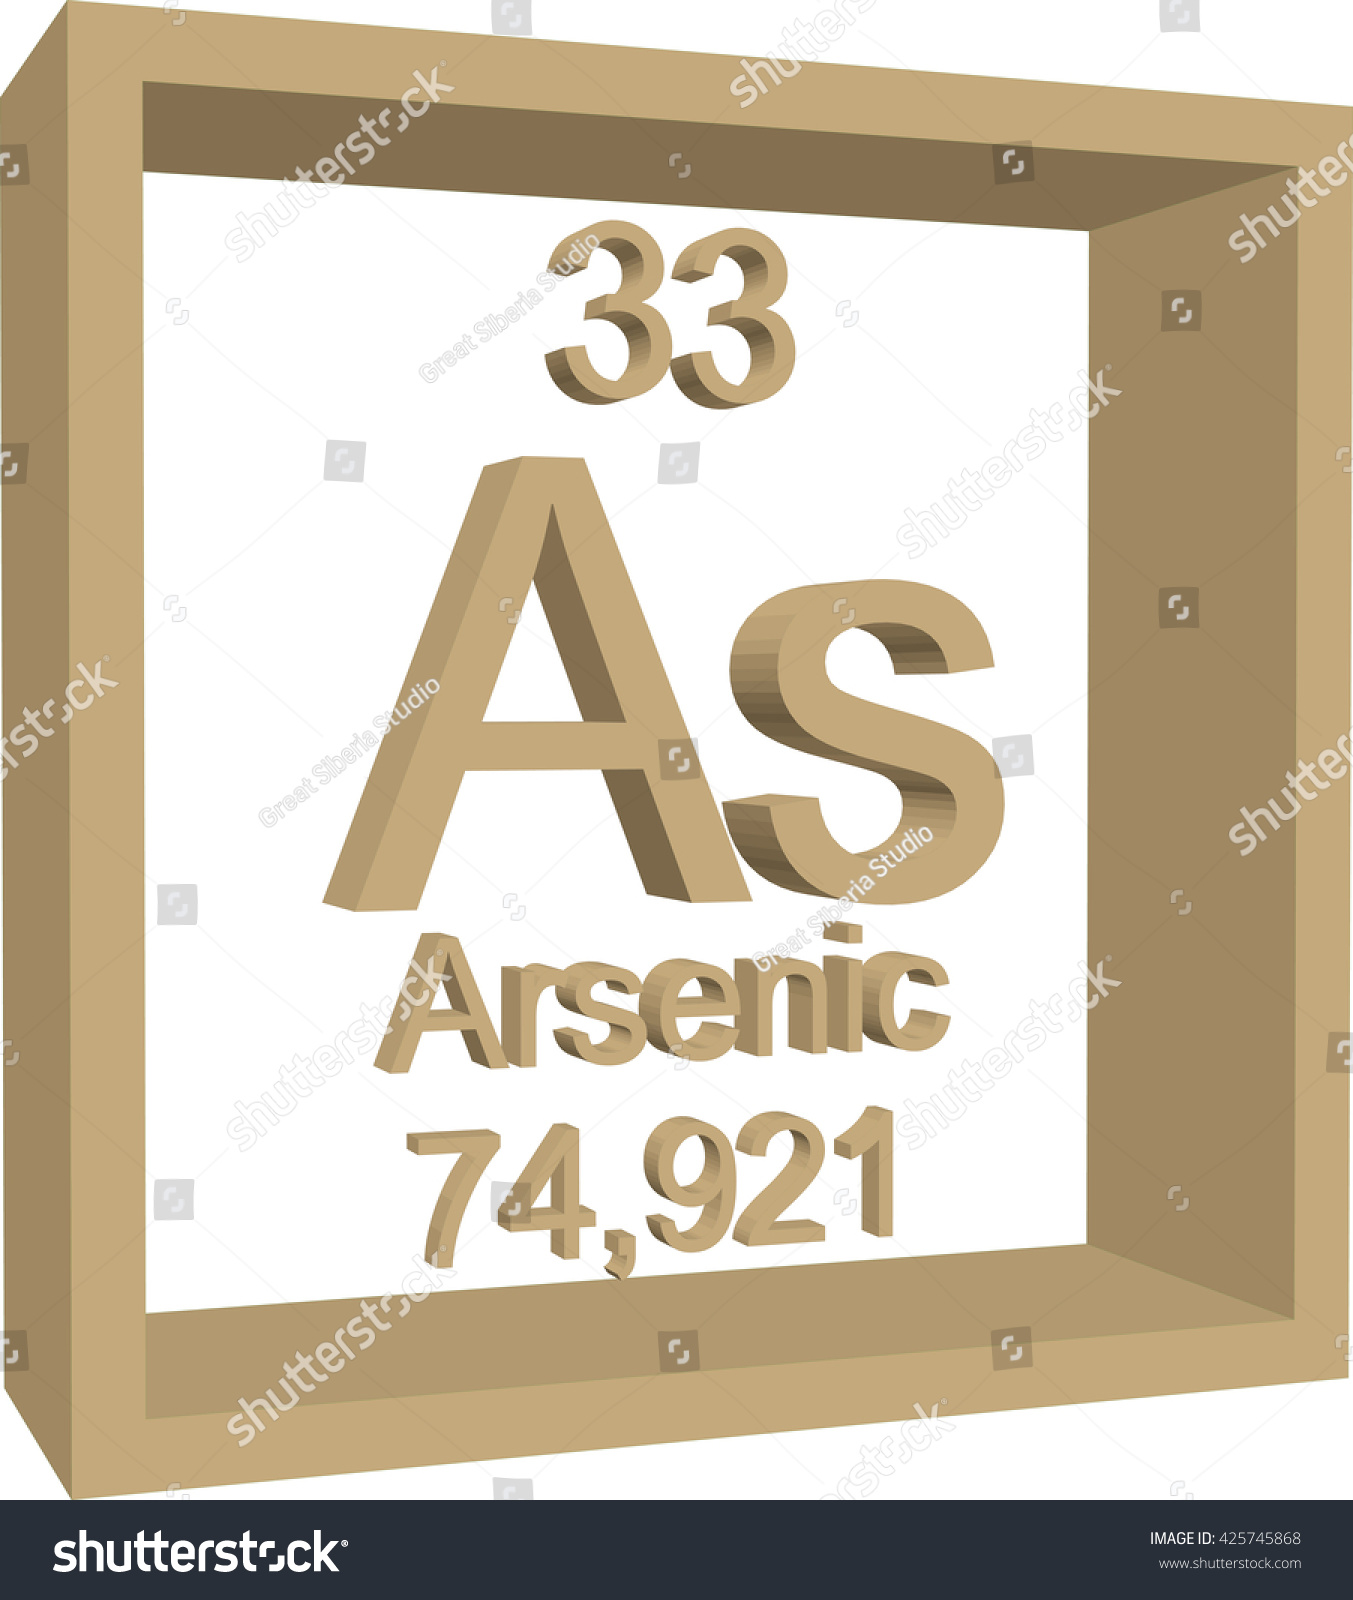 Periodic table elements arsenic stock vector 425745868 shutterstock periodic table of elements arsenic biocorpaavc Image collections